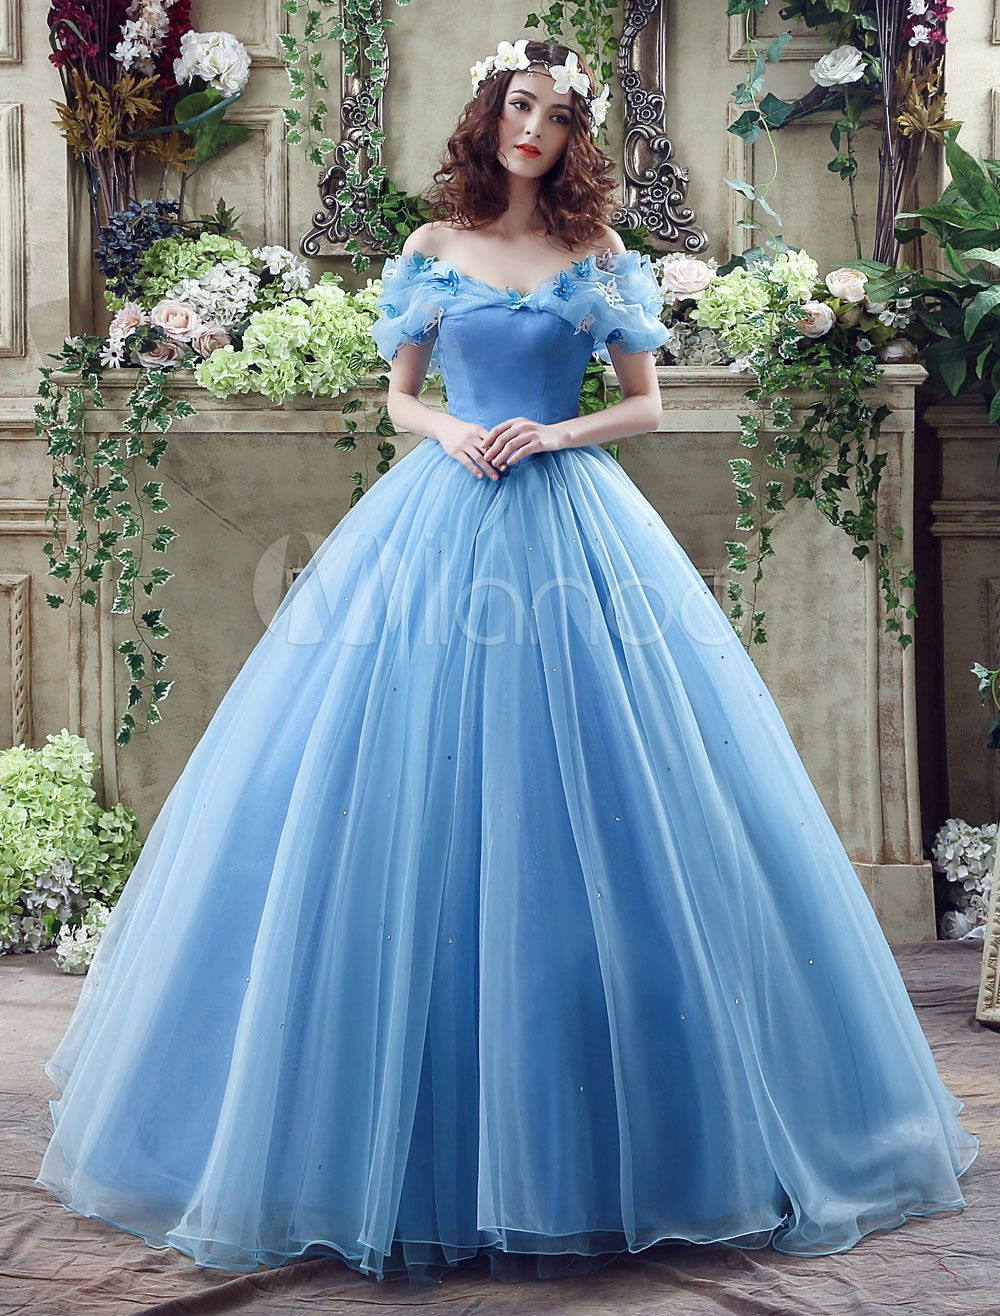 Cinderella Dress Blue Organza Tulle Off the Shoulder Ball Gown Dress ...